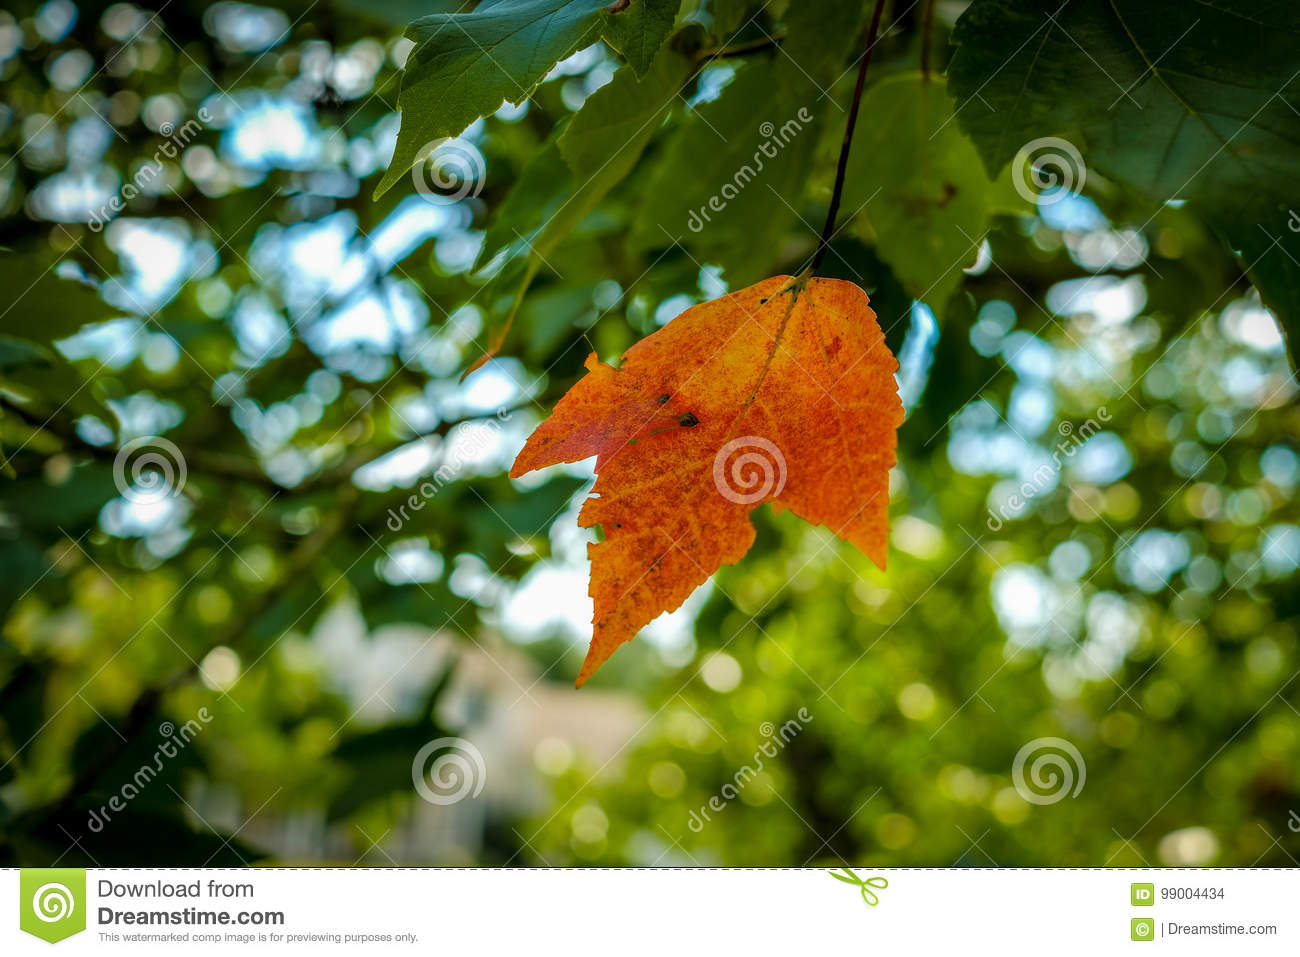 One Orange Leaf On A Green Maple Tree Stock Photo - Image of yellow ...